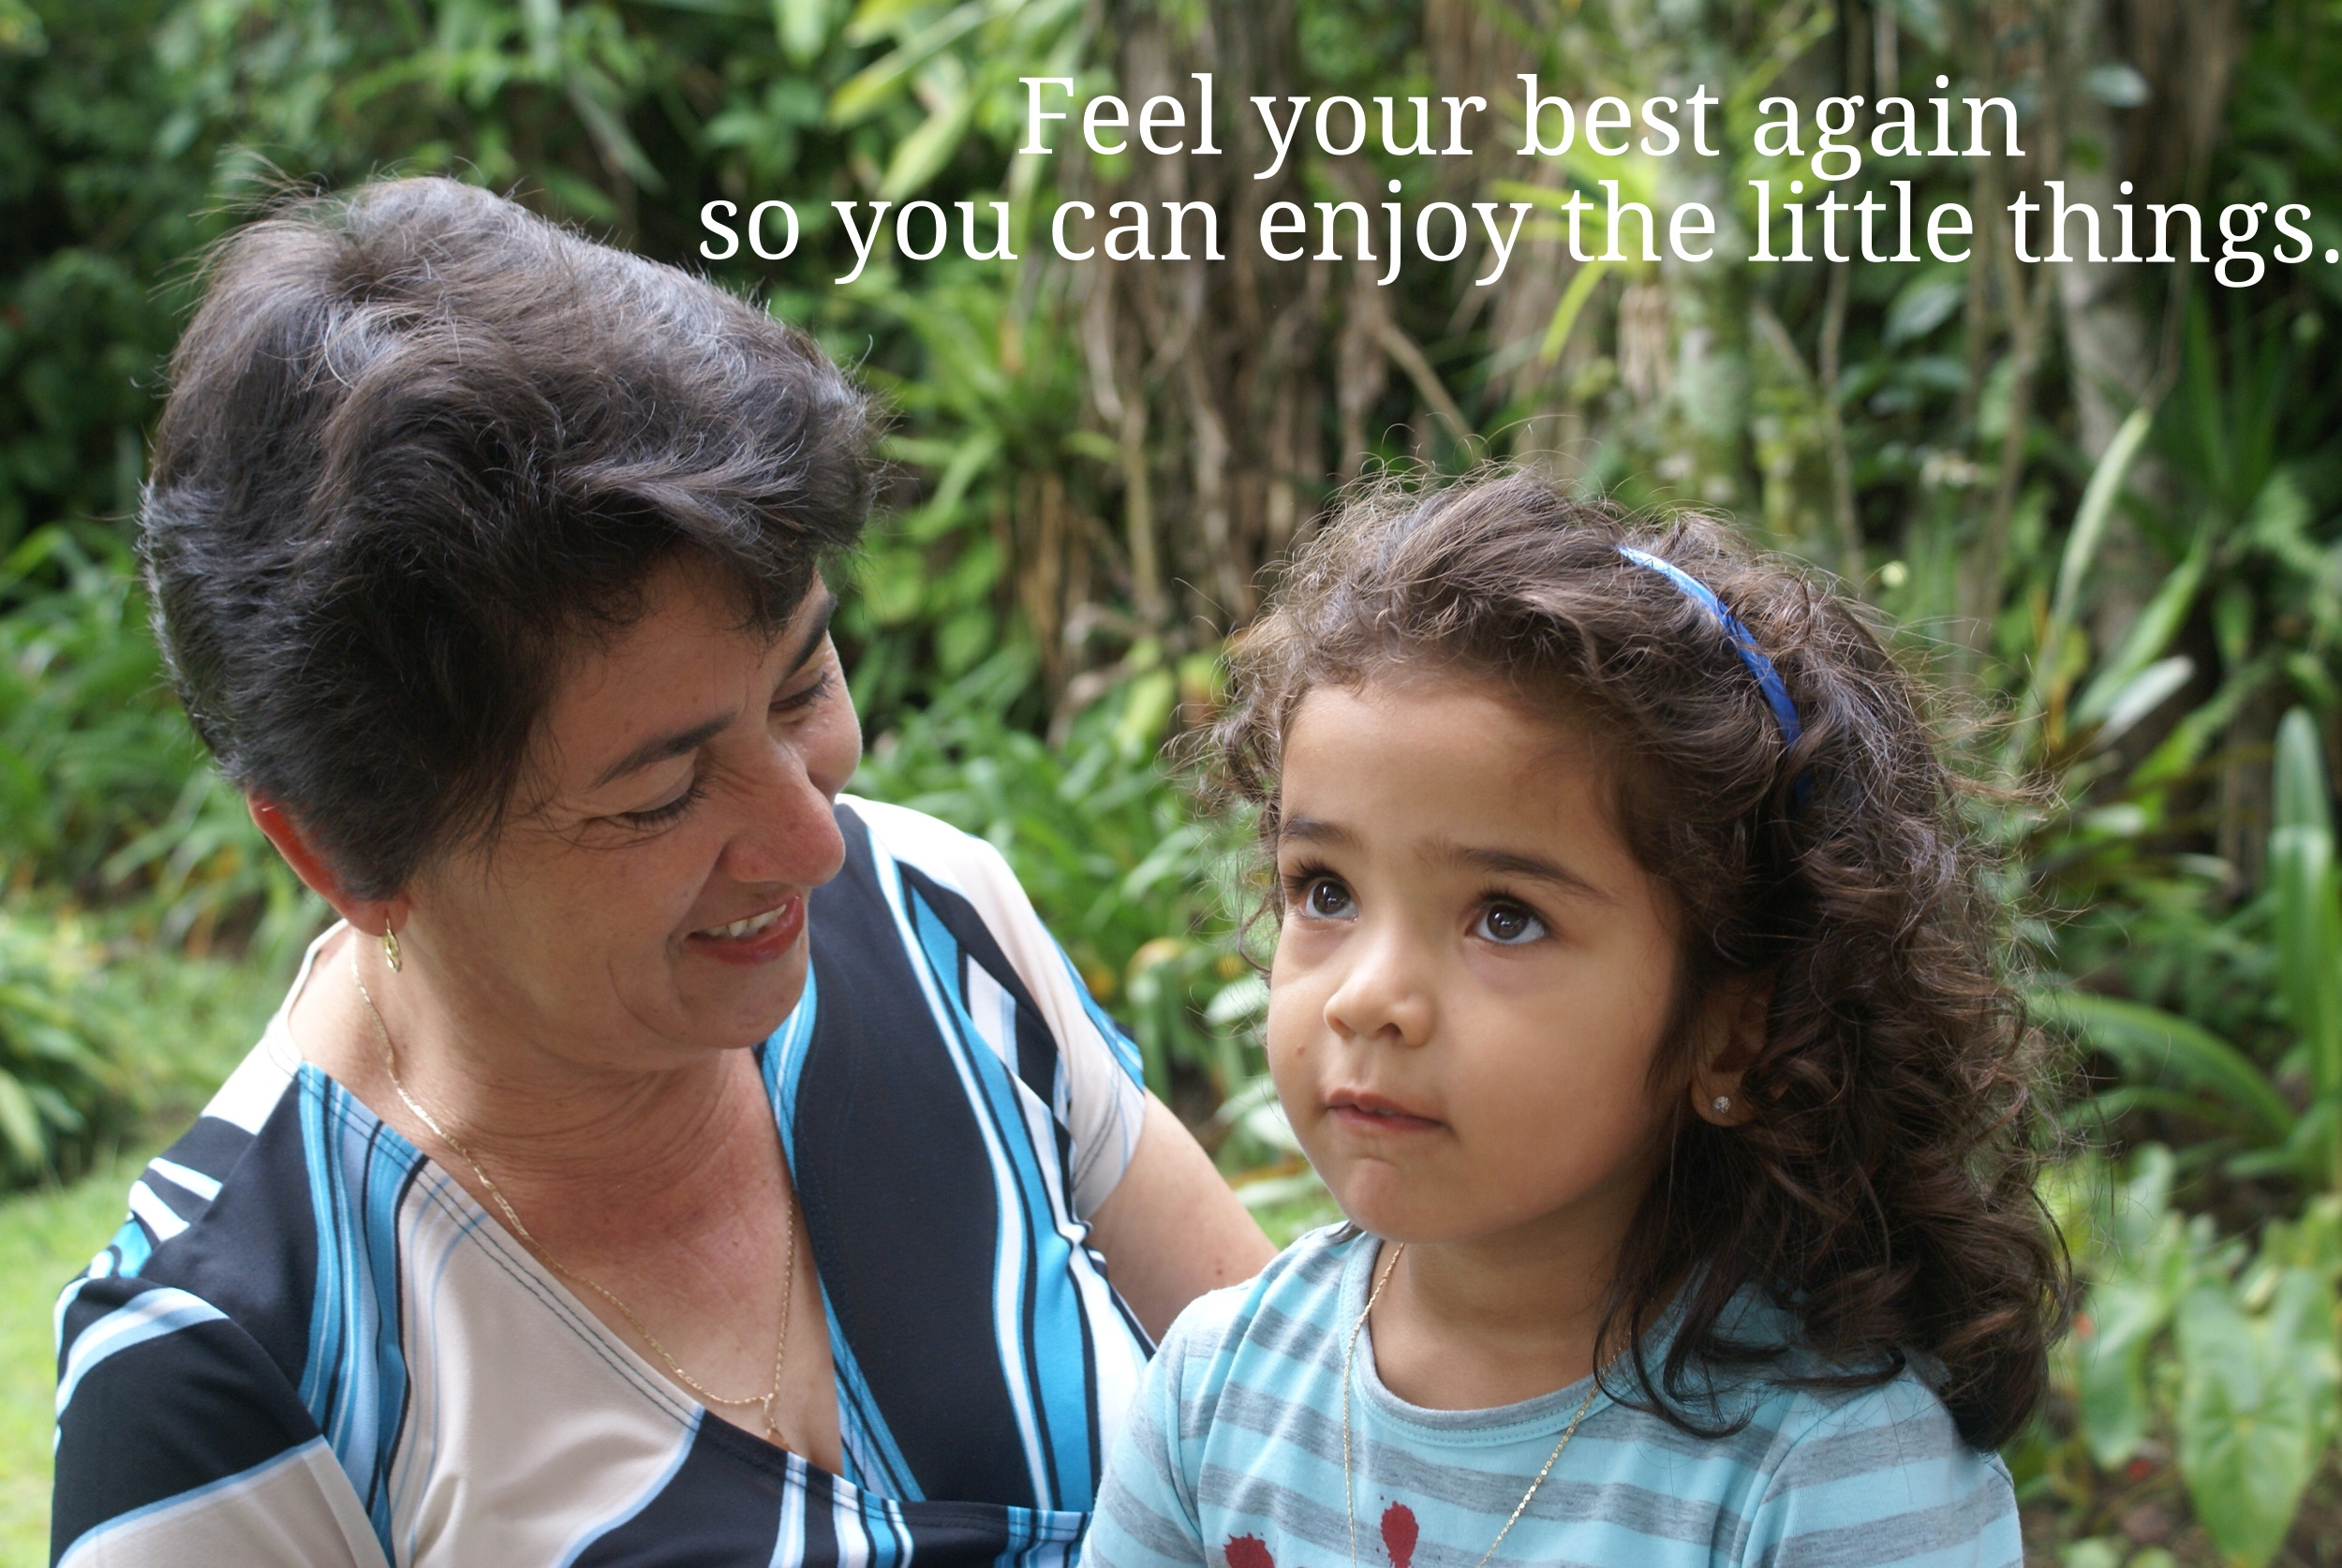 Feel your best again so you can enjoy the little things (Grandmother holds granddaughter).